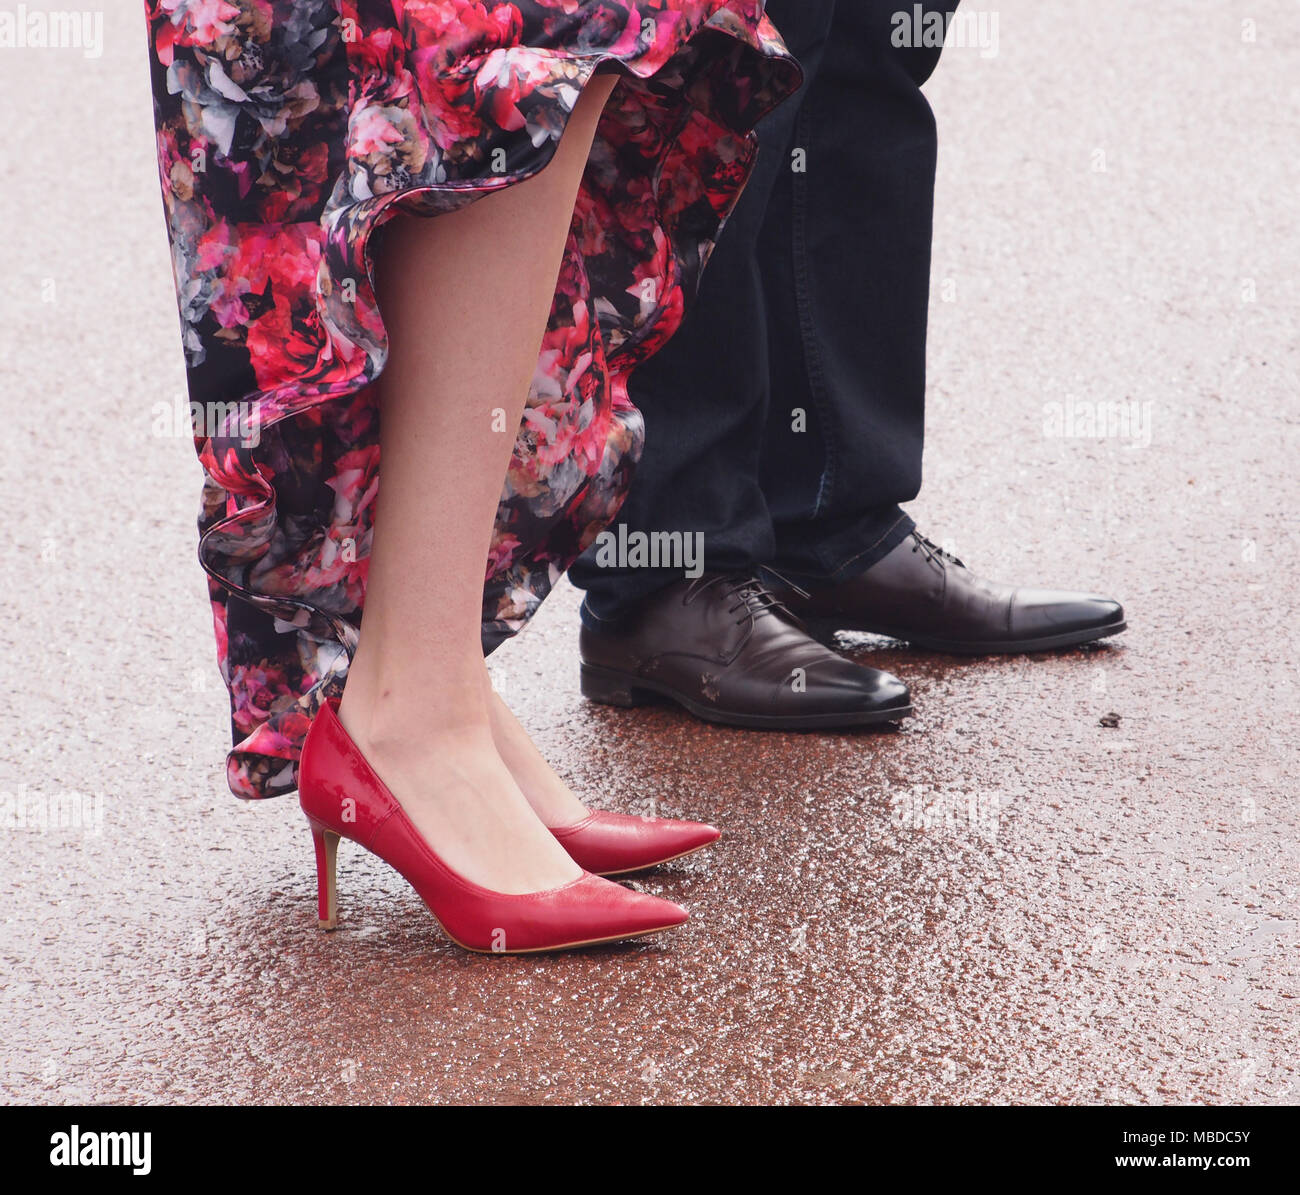 A woman's lower legs, flowery dress and red stiletto heels standing next to a man's legs in trousers and dress shoes on wet  paving - Stock Image